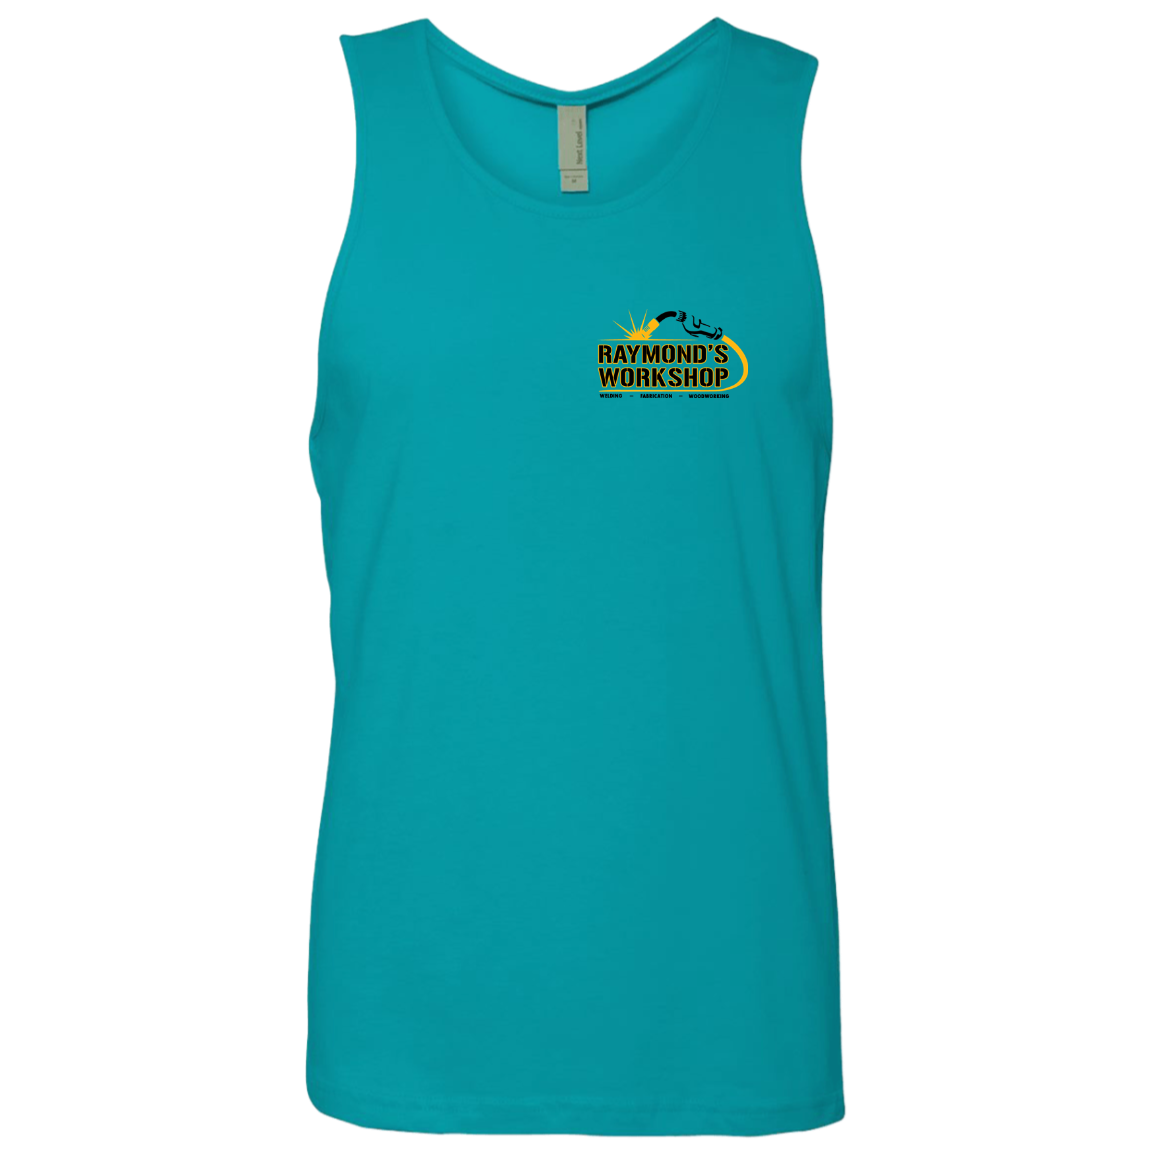 Raymond's Workshop Premium Men's Cotton Tank